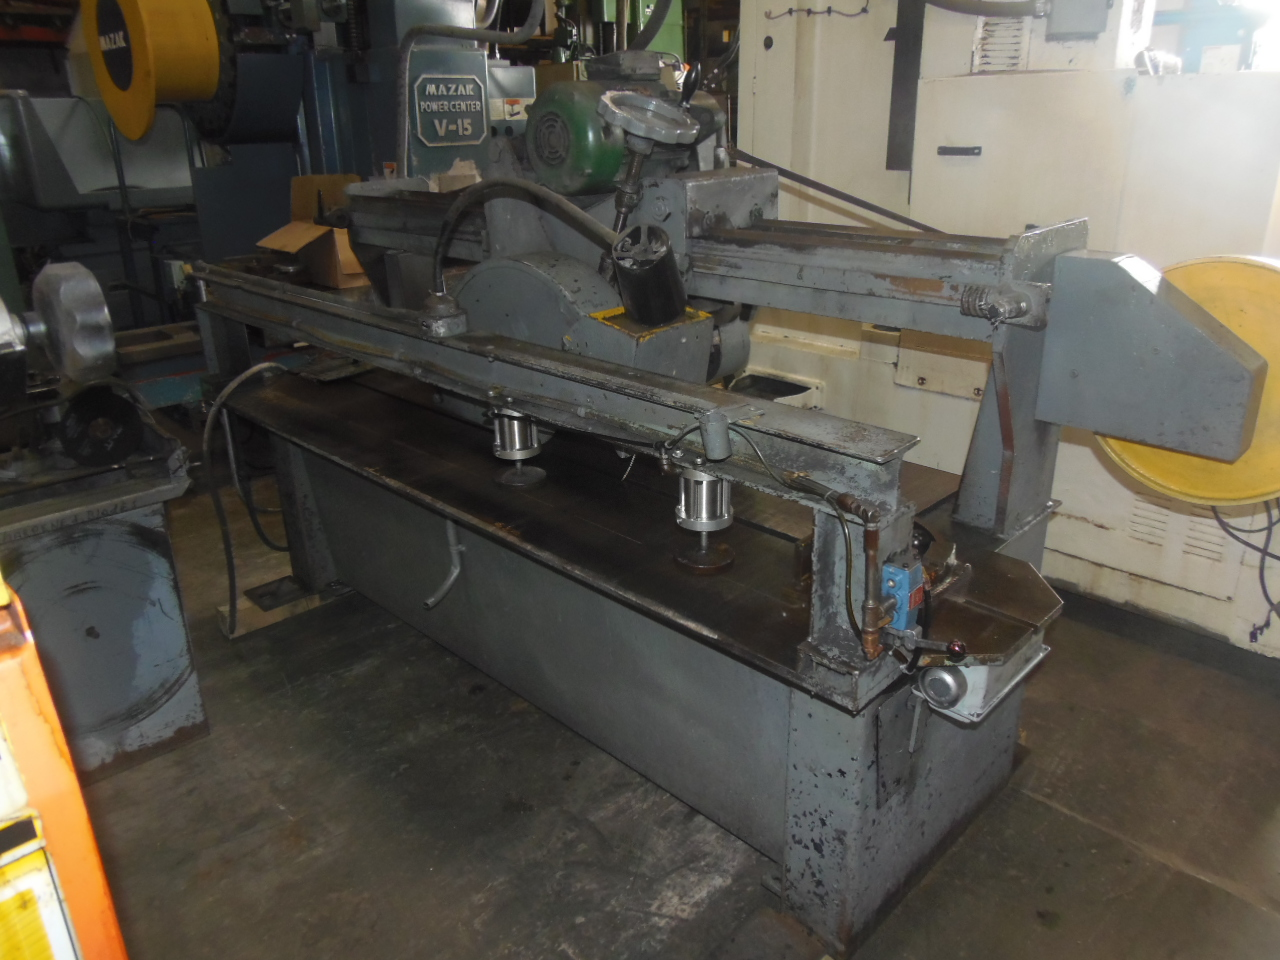 "PROMACUT LONG BED TRAVERSING CUT-OFF SAW, MODEL UNI-9-15, 15 HP, 21"" DIA. BLADE, 3000 RPM, 3' x 6' TABLE, 6' TRAVEL, BLADE SHARPENER"